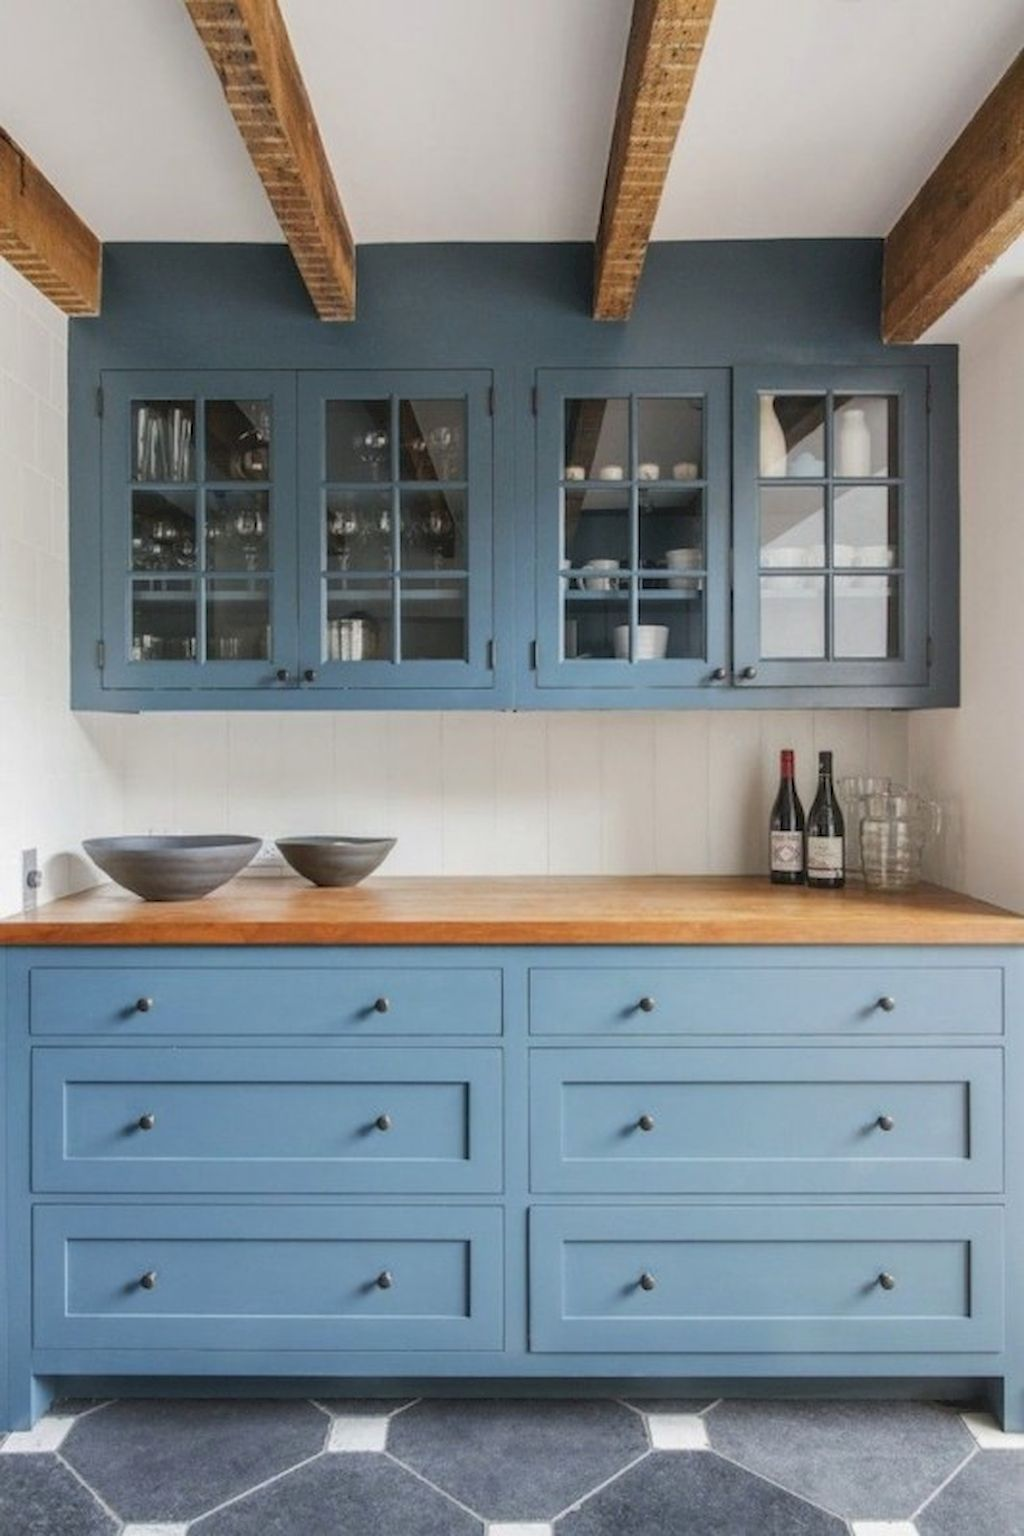 90 Pretty Farmhouse Kitchen Cabinet Design Ideas | Farmhouse kitchen ...